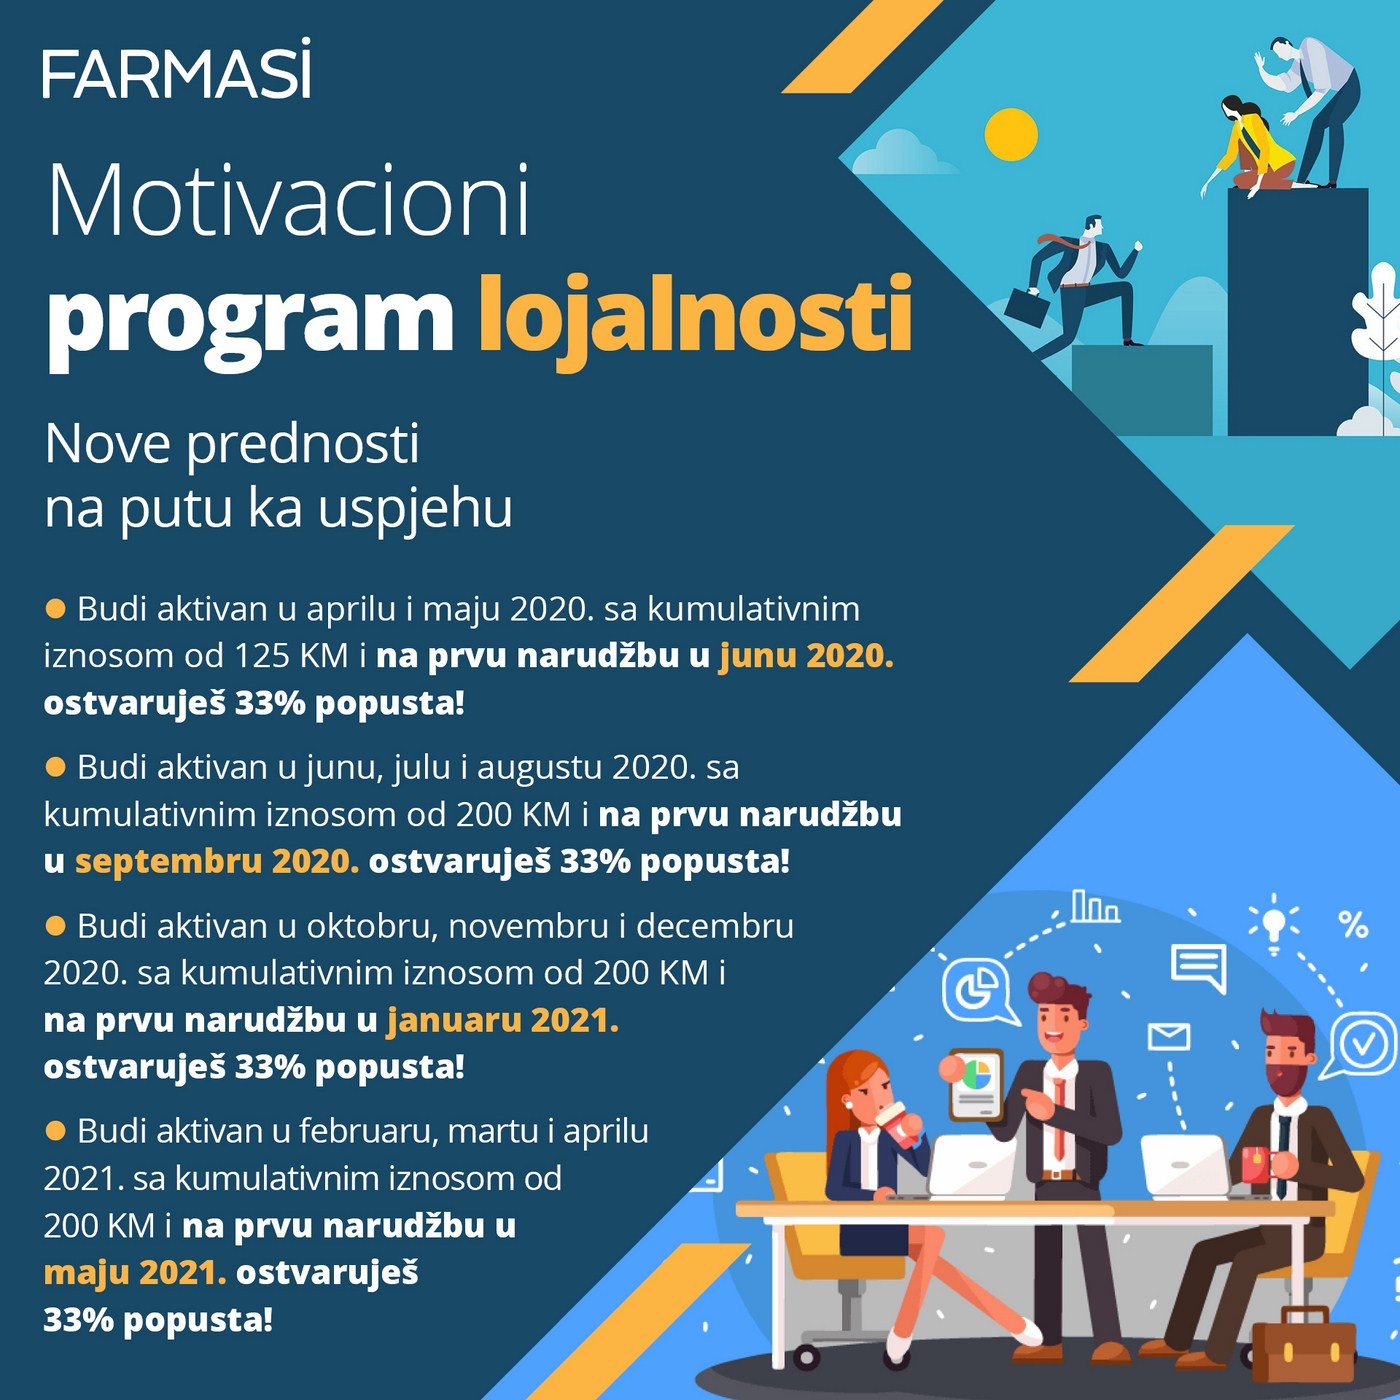 Motivacioni program lojalnosti